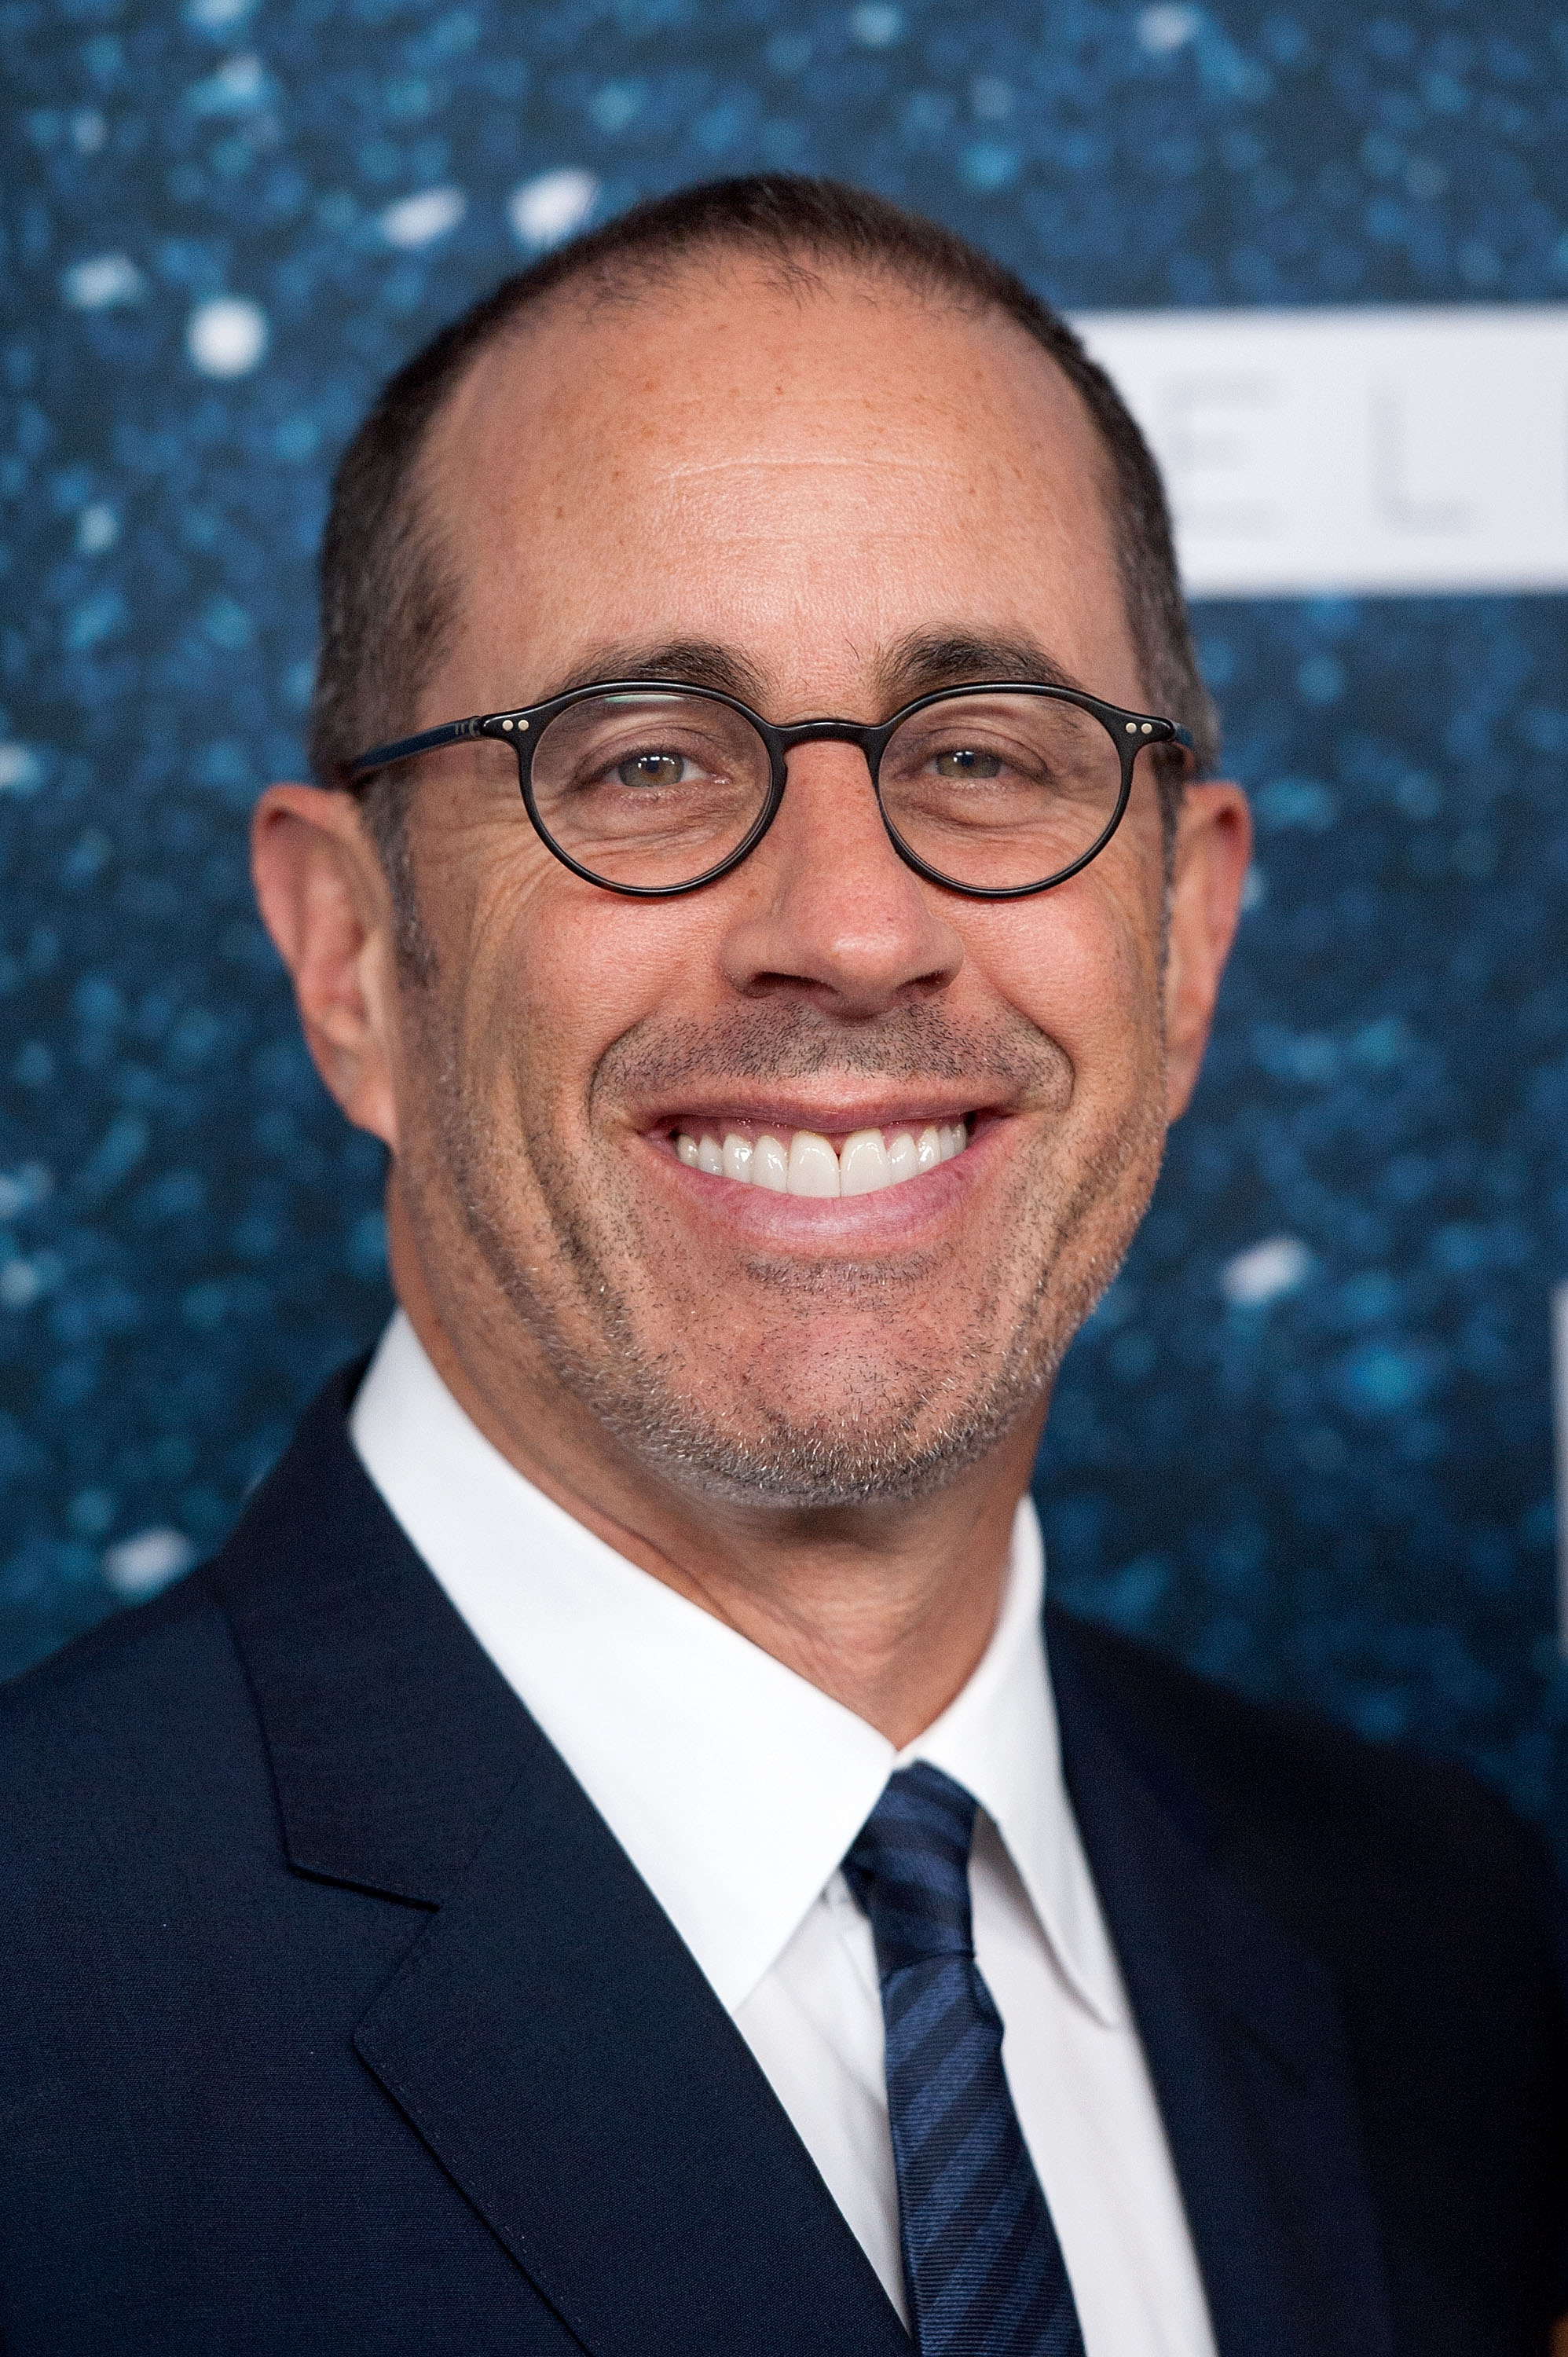 Comedian Jerry Seinfeld - age: 67